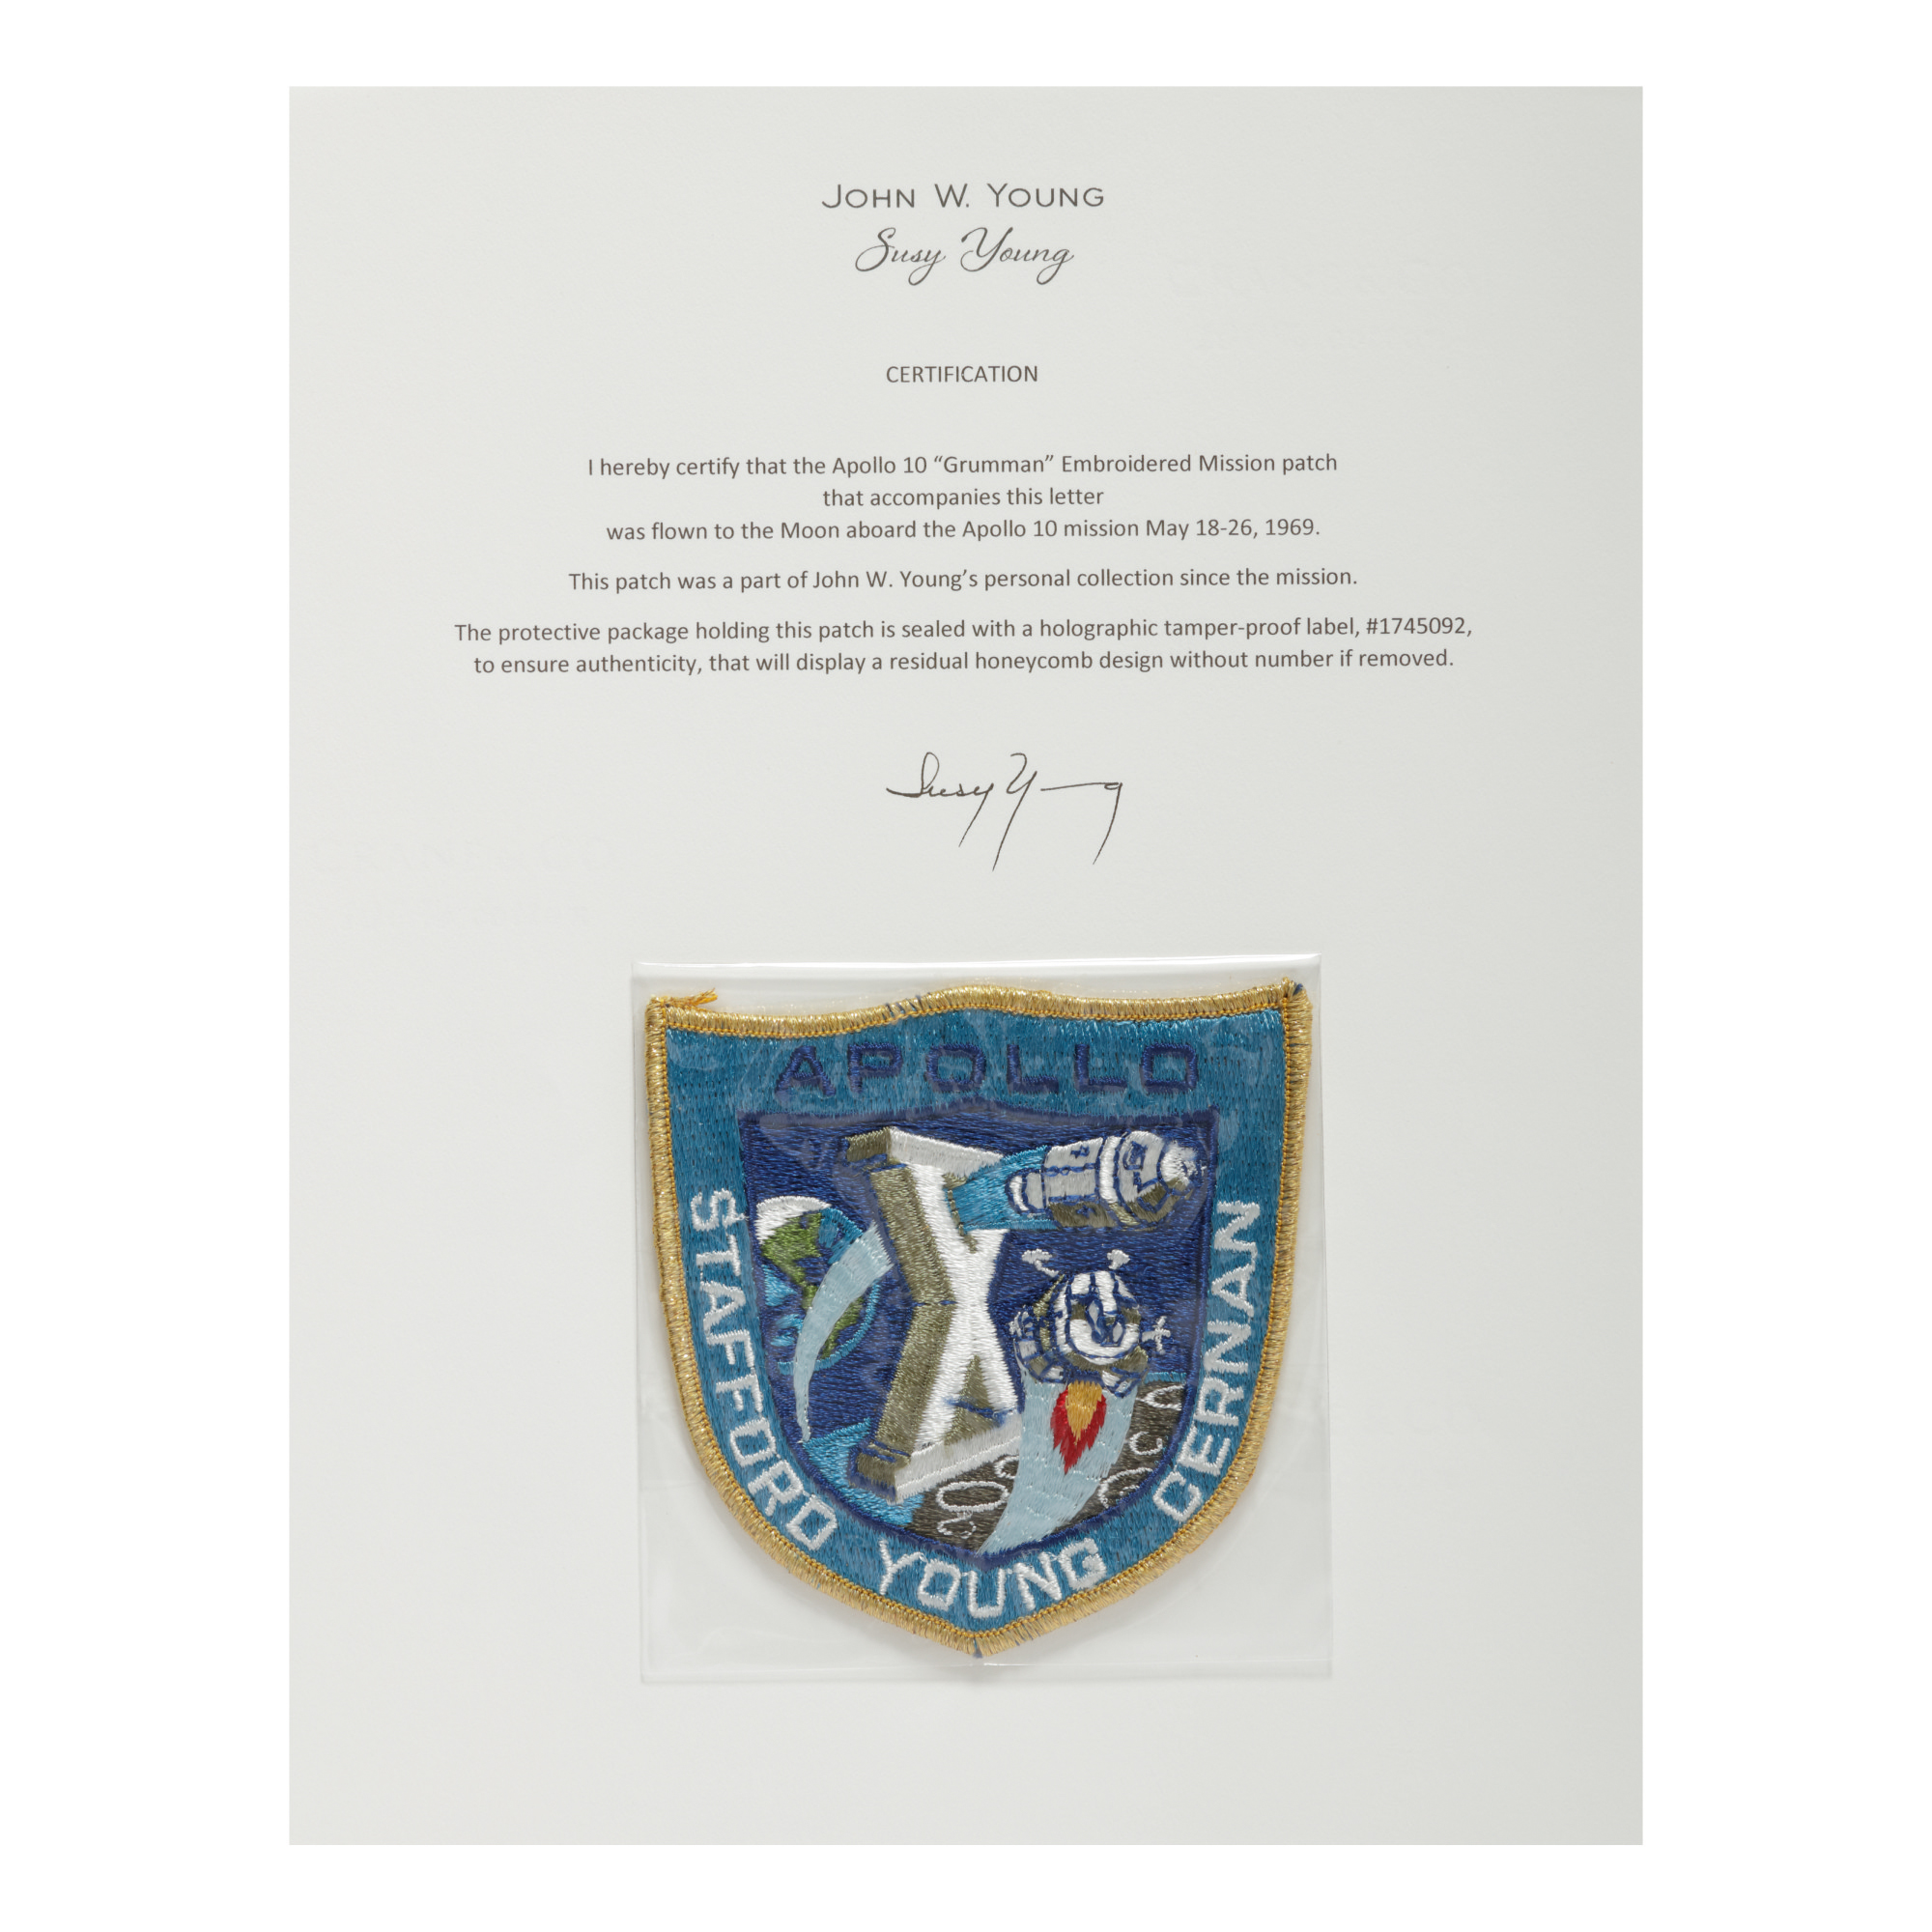 """[APOLLO 10]. FLOWN ON APOLLO 10. """"GRUMMAN"""" EMBROIDERED MISSION INSIGNIA PATCH FROM THE COLLECTION OF JOHN YOUNG"""